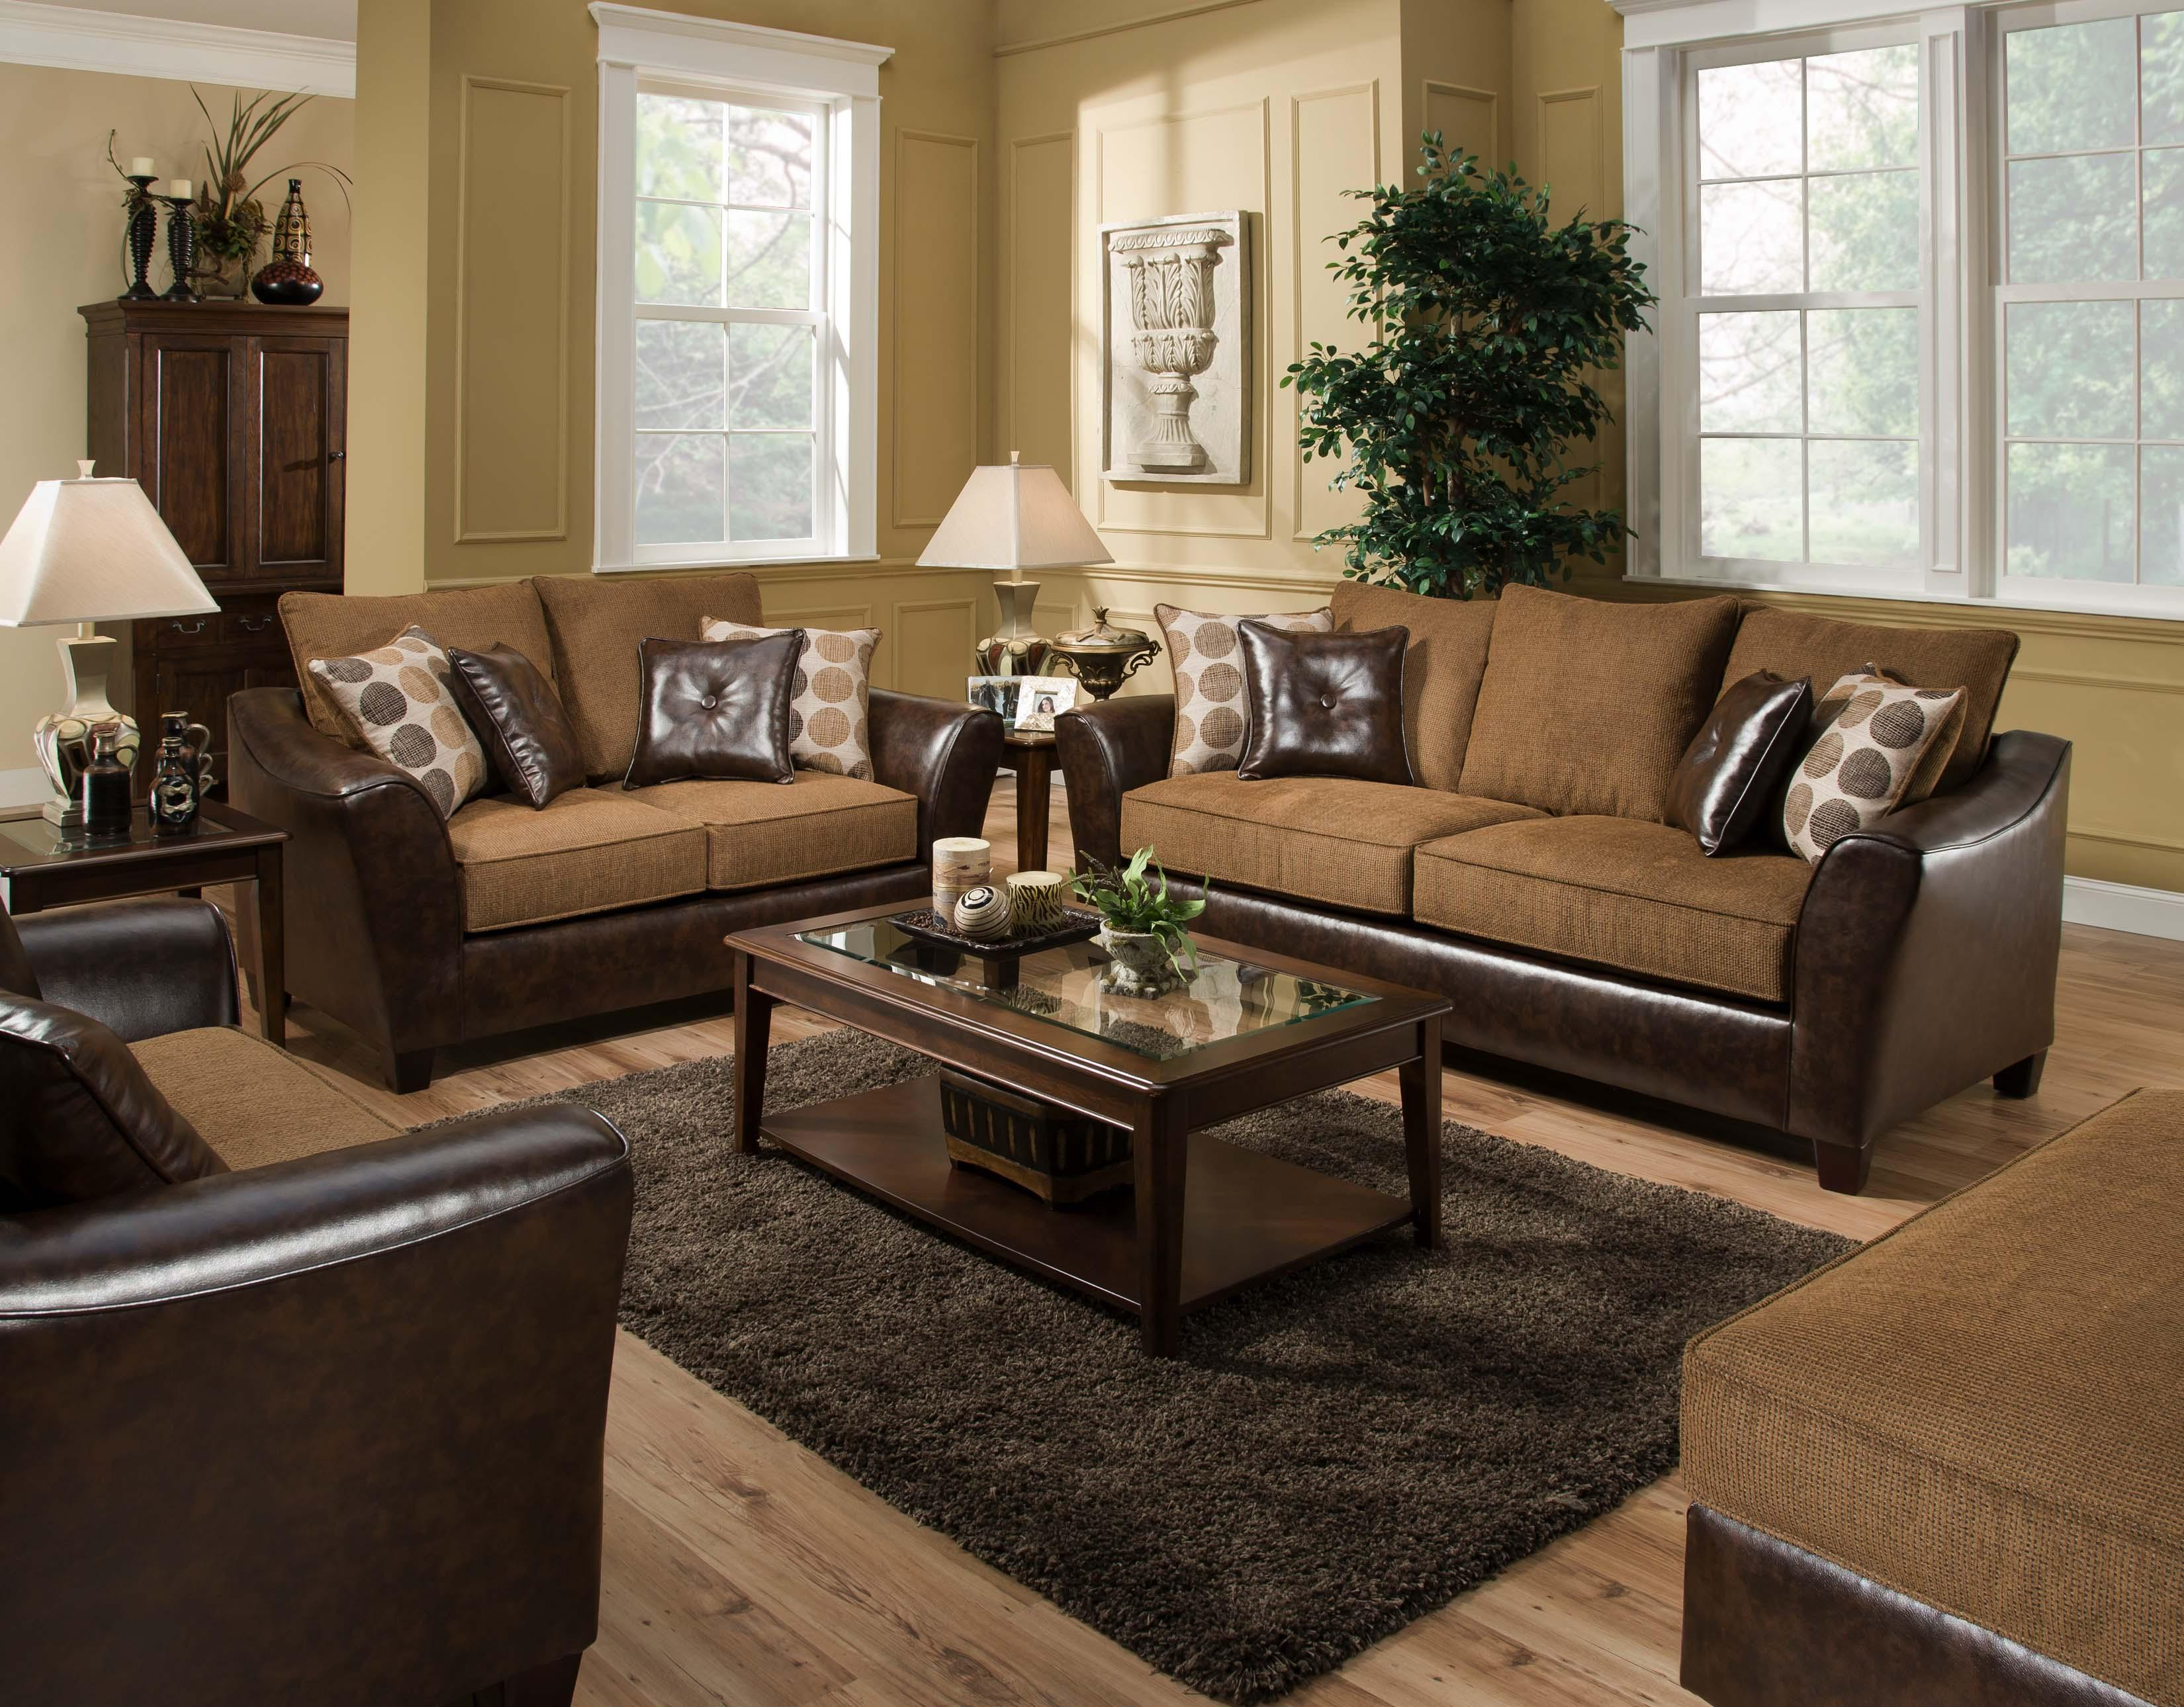 American Furniture 3200 Group Stationary Living Room Group - Item Number: 4820 Living Room Group 1